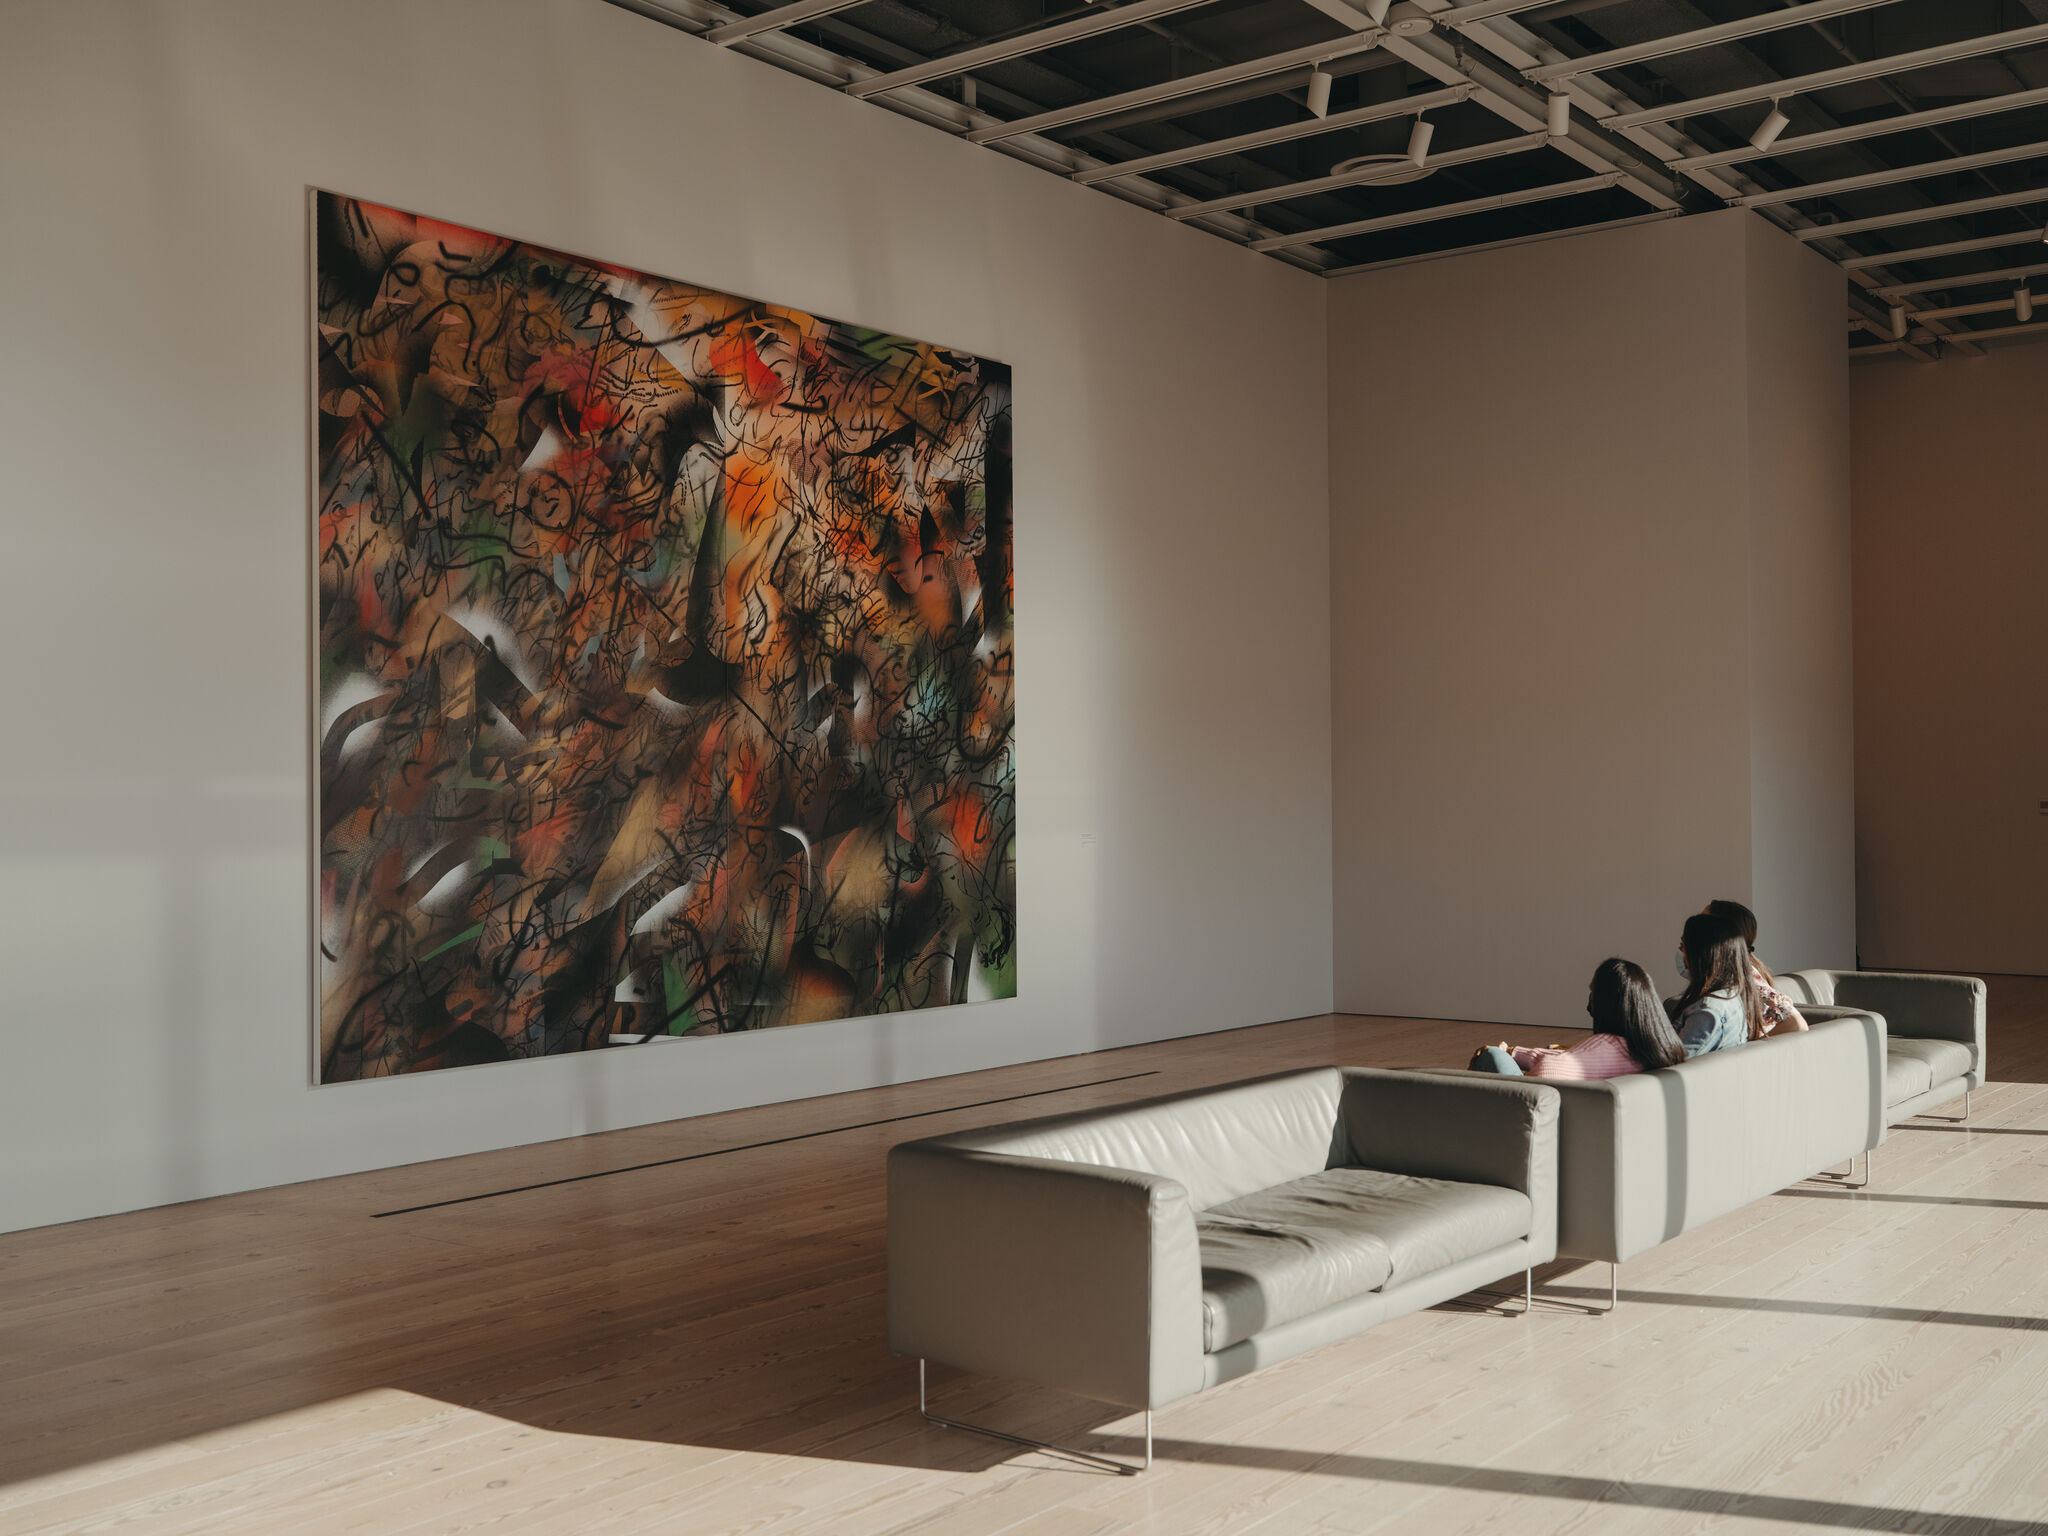 A colorful, abstract, large-scale painting by Julie Mehretu with visitors viewing it seated from a couch.